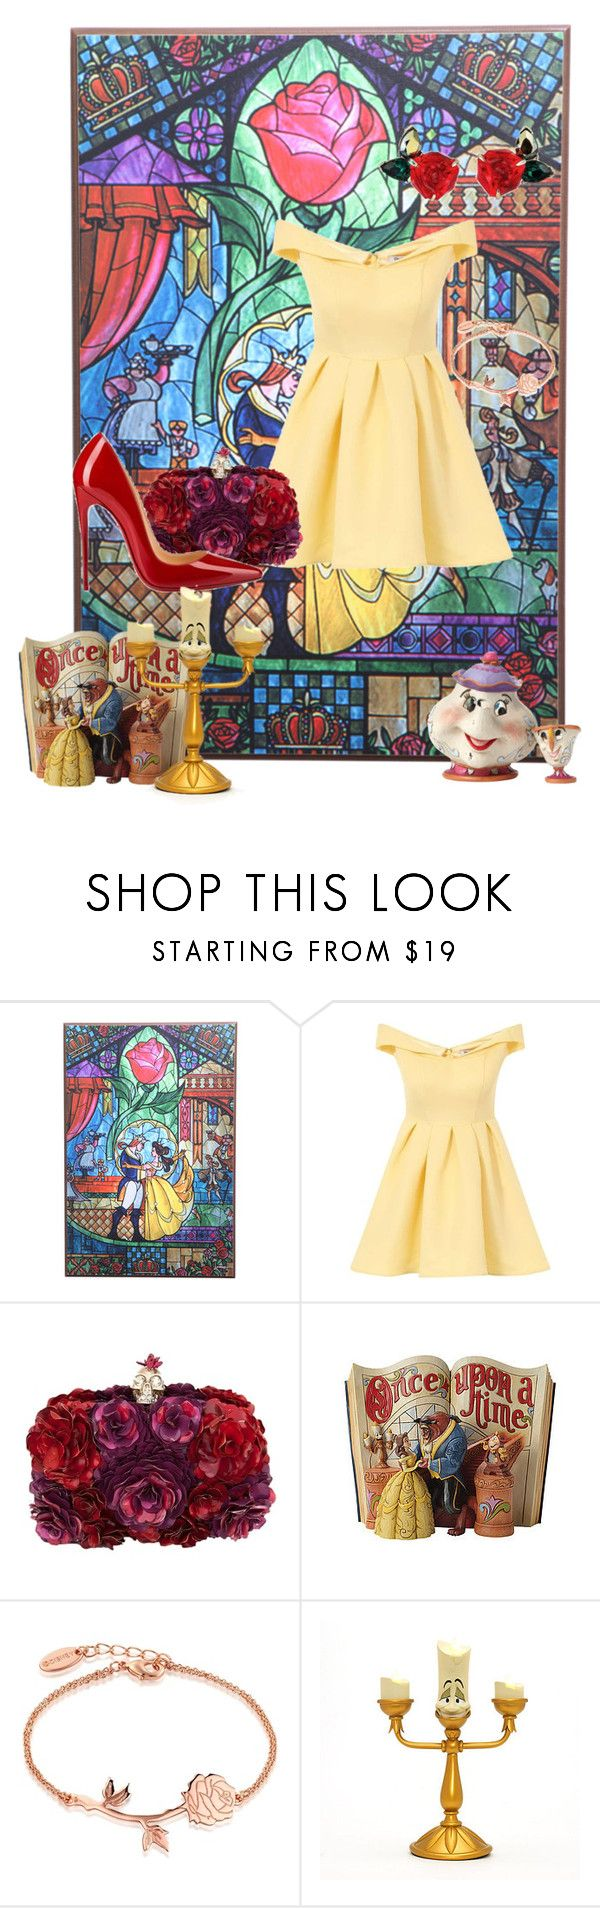 """Belle: Disney Bound"" by dear-x-you-dont-own-me ❤ liked on Polyvore featuring Disney, Chi Chi, Alexander McQueen, Christian Louboutin and Lumière"